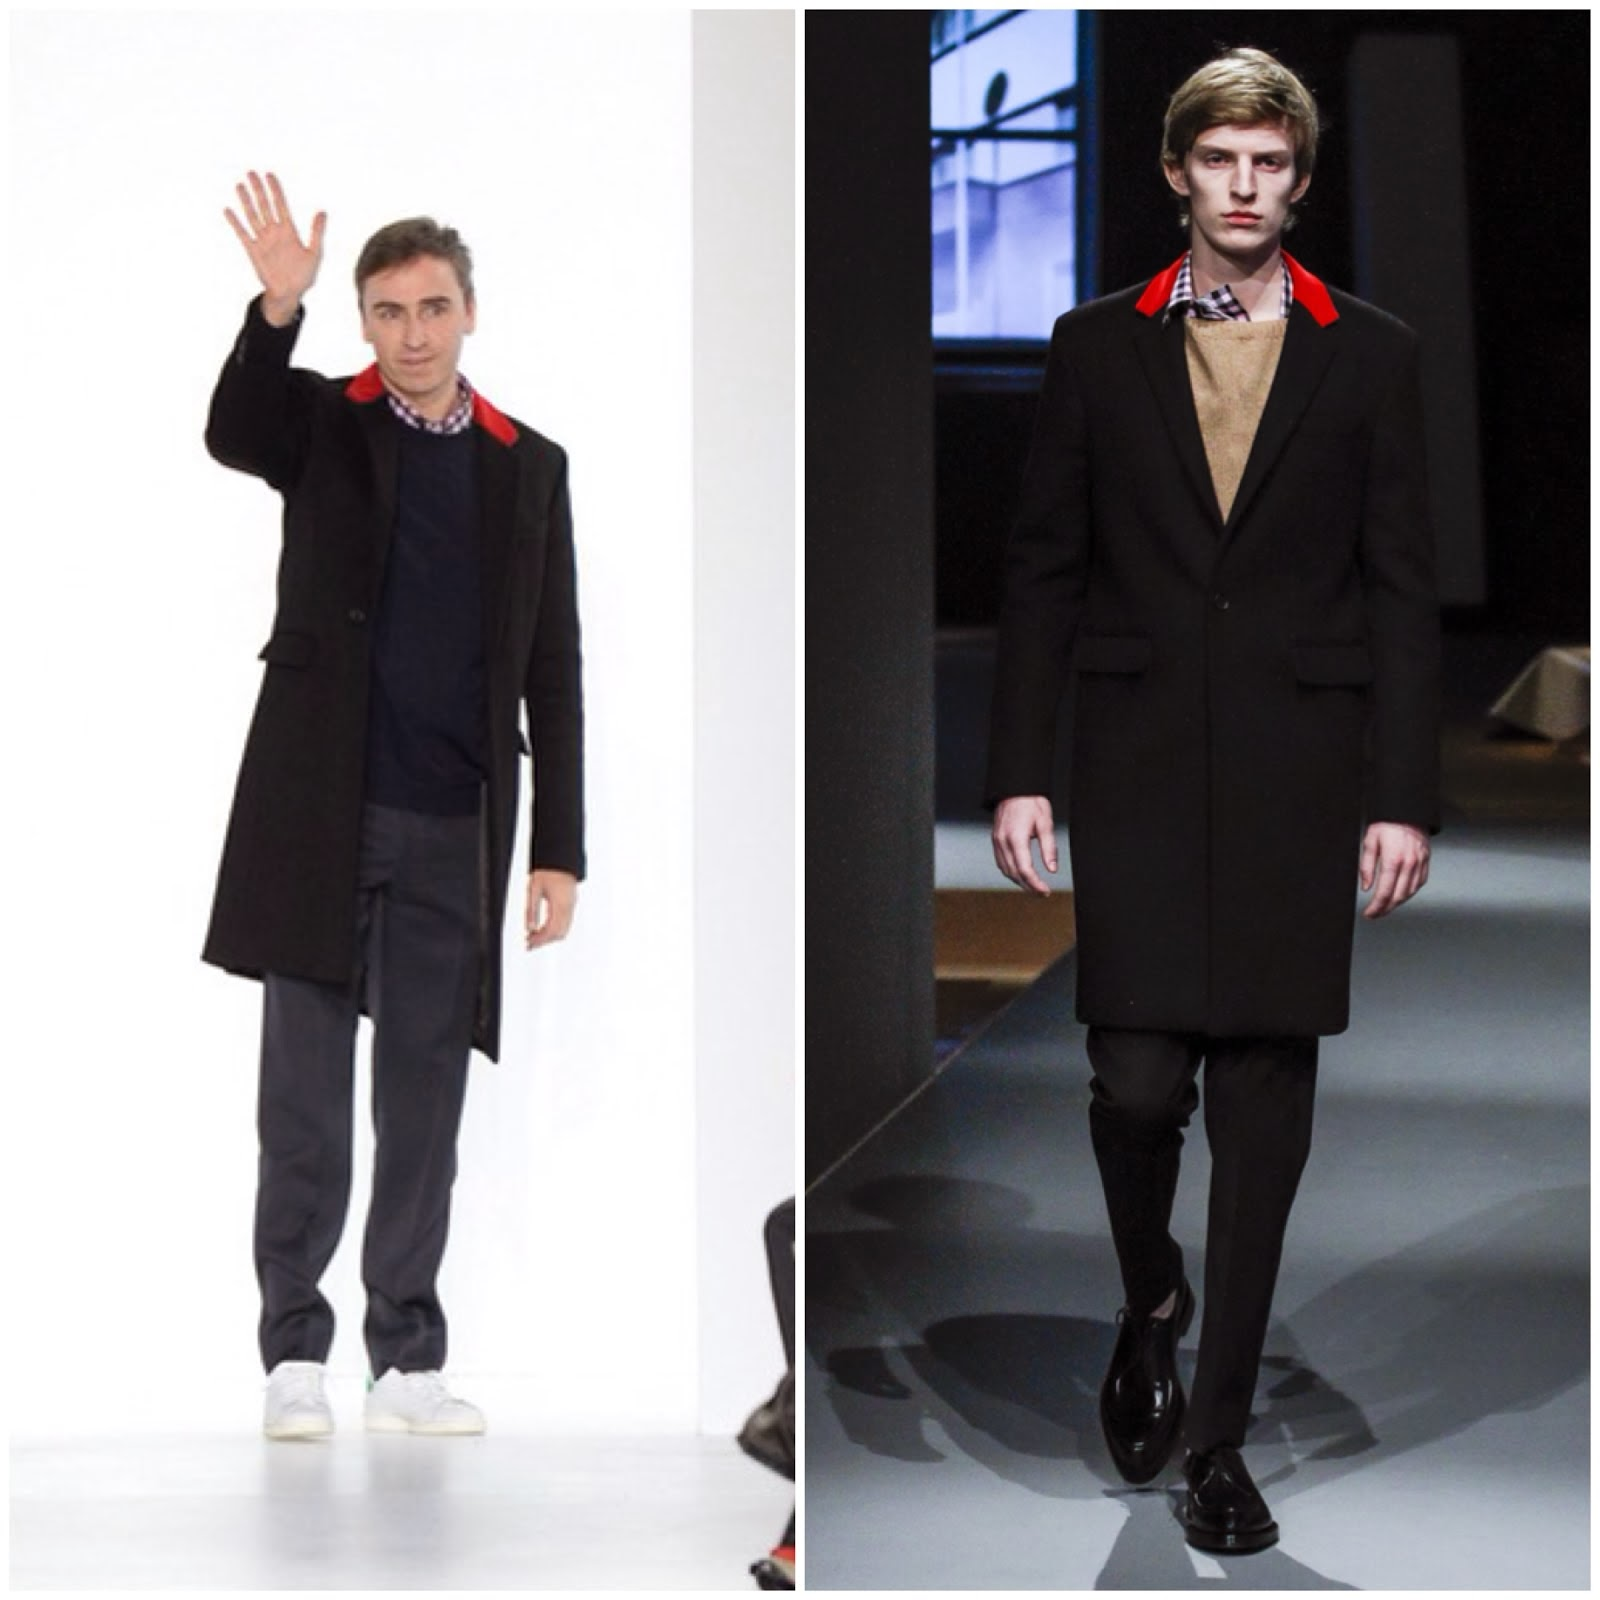 Raf Simons in Prada - Christian Dior Fall Winter 2014 Show